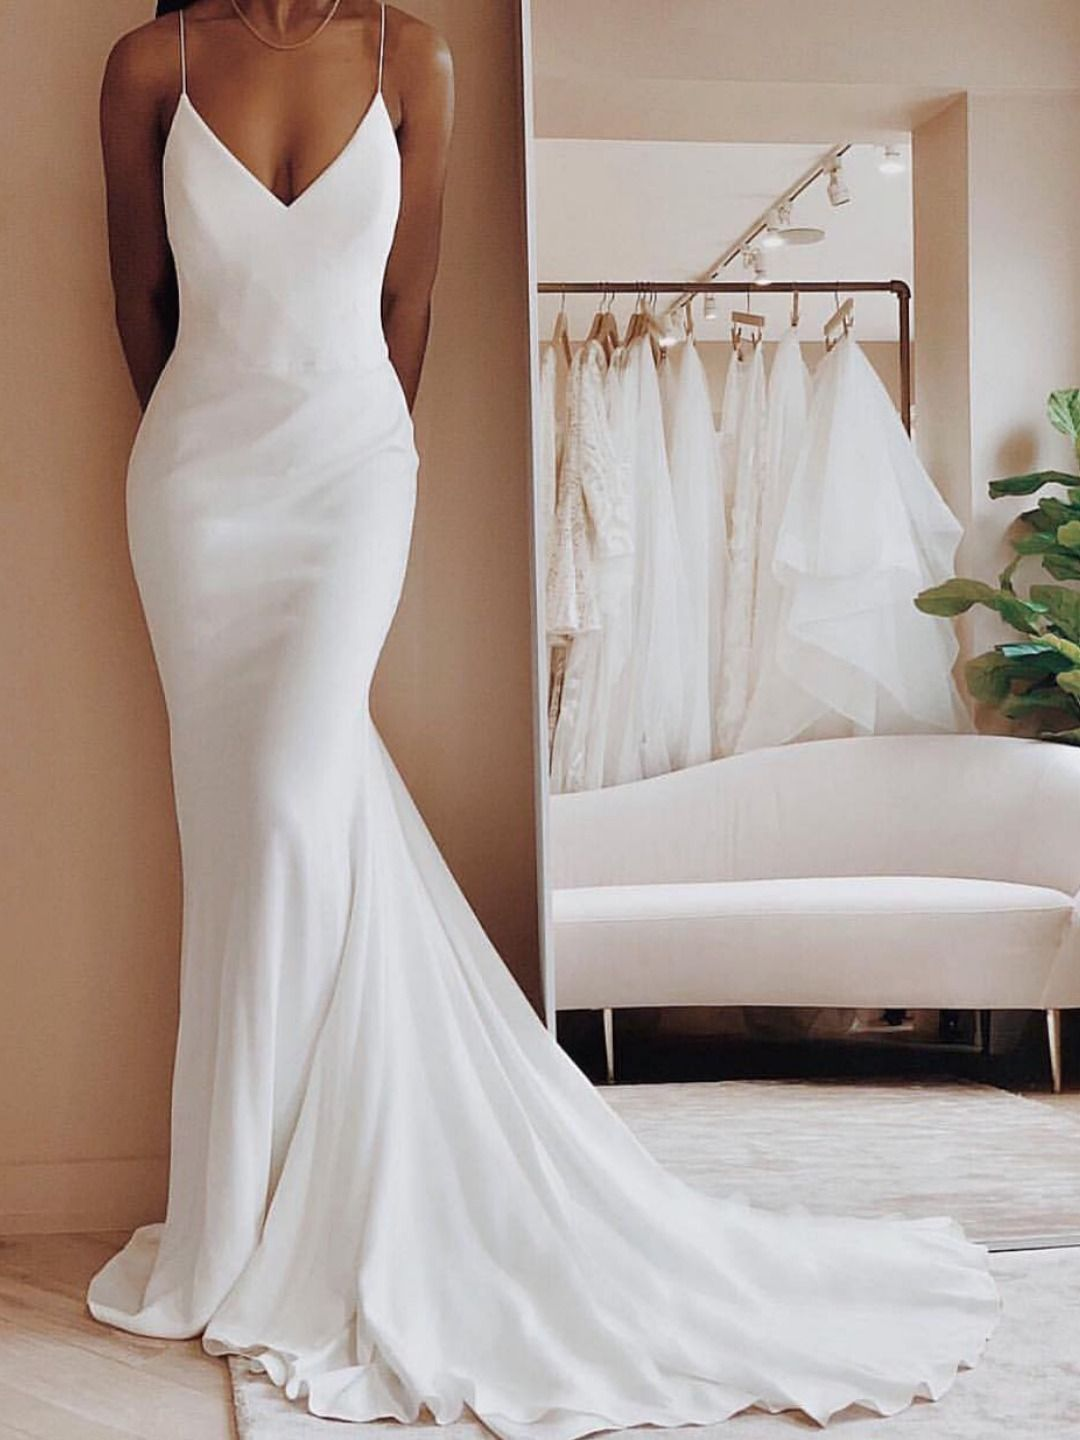 Long Ivory Satin Spaghetti Strap V Neck Mermaid Formal Dress With Sweep Train From Queenparty Sheath Wedding Dress Dream Wedding Dresses Wedding Dresses [ 1440 x 1080 Pixel ]